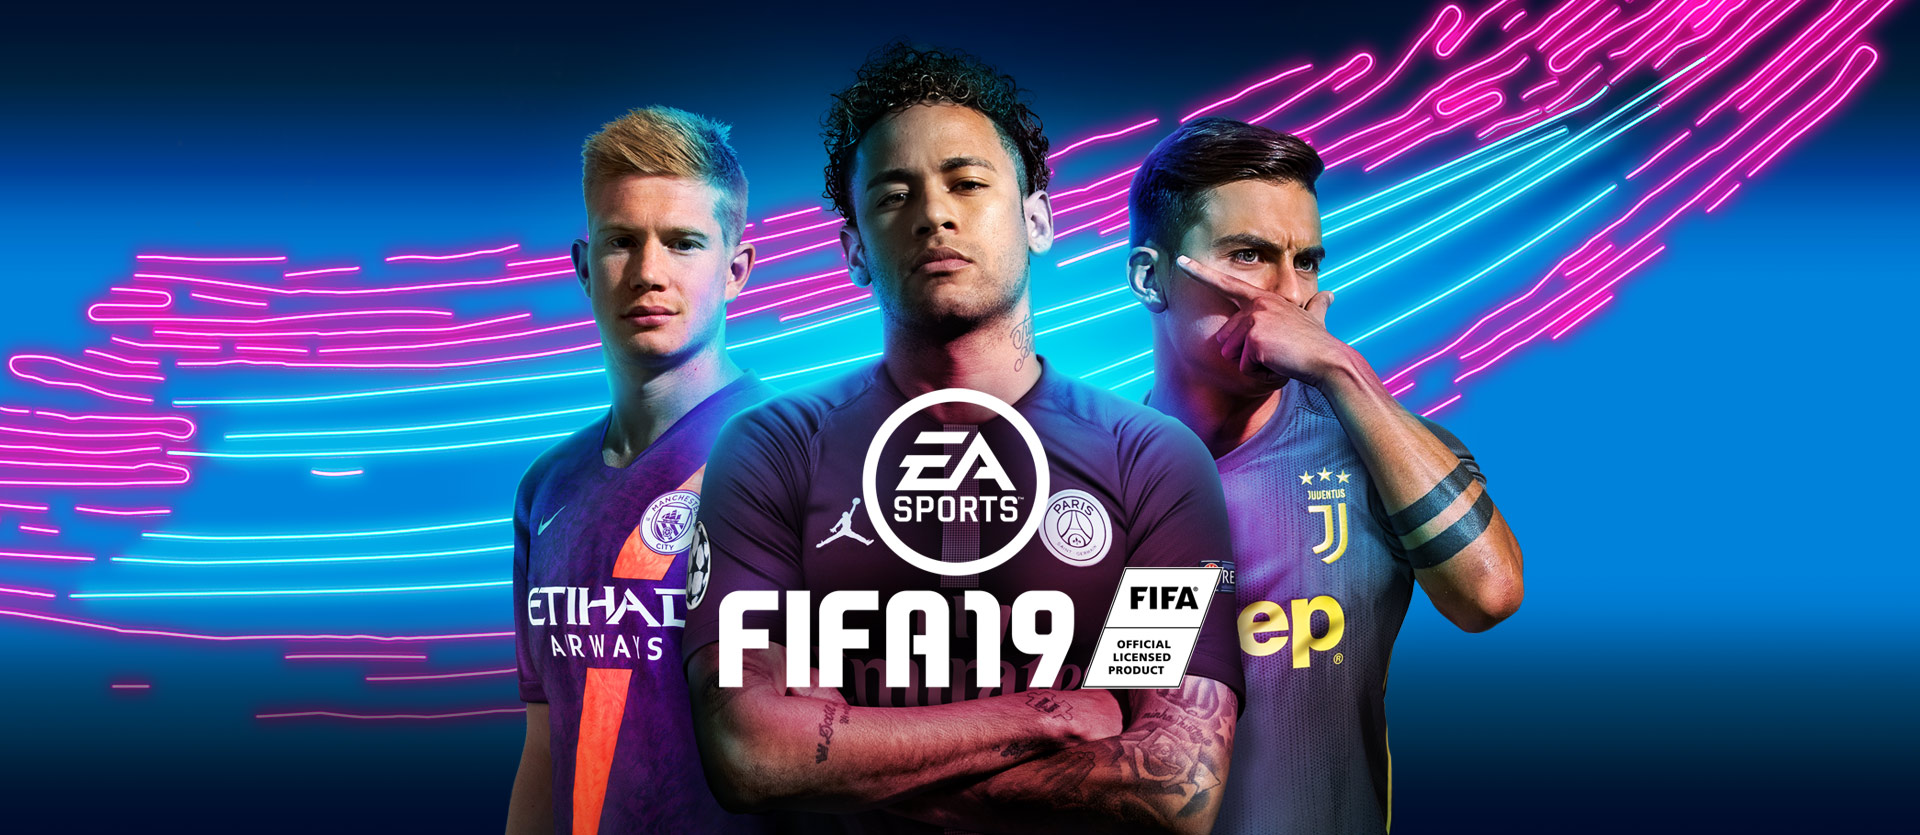 FIFA 19 Ultimate Team – Kevin De Bruyne, Neymar, und Paulo Dybala posieren mit Ultimate Team-Jerseys